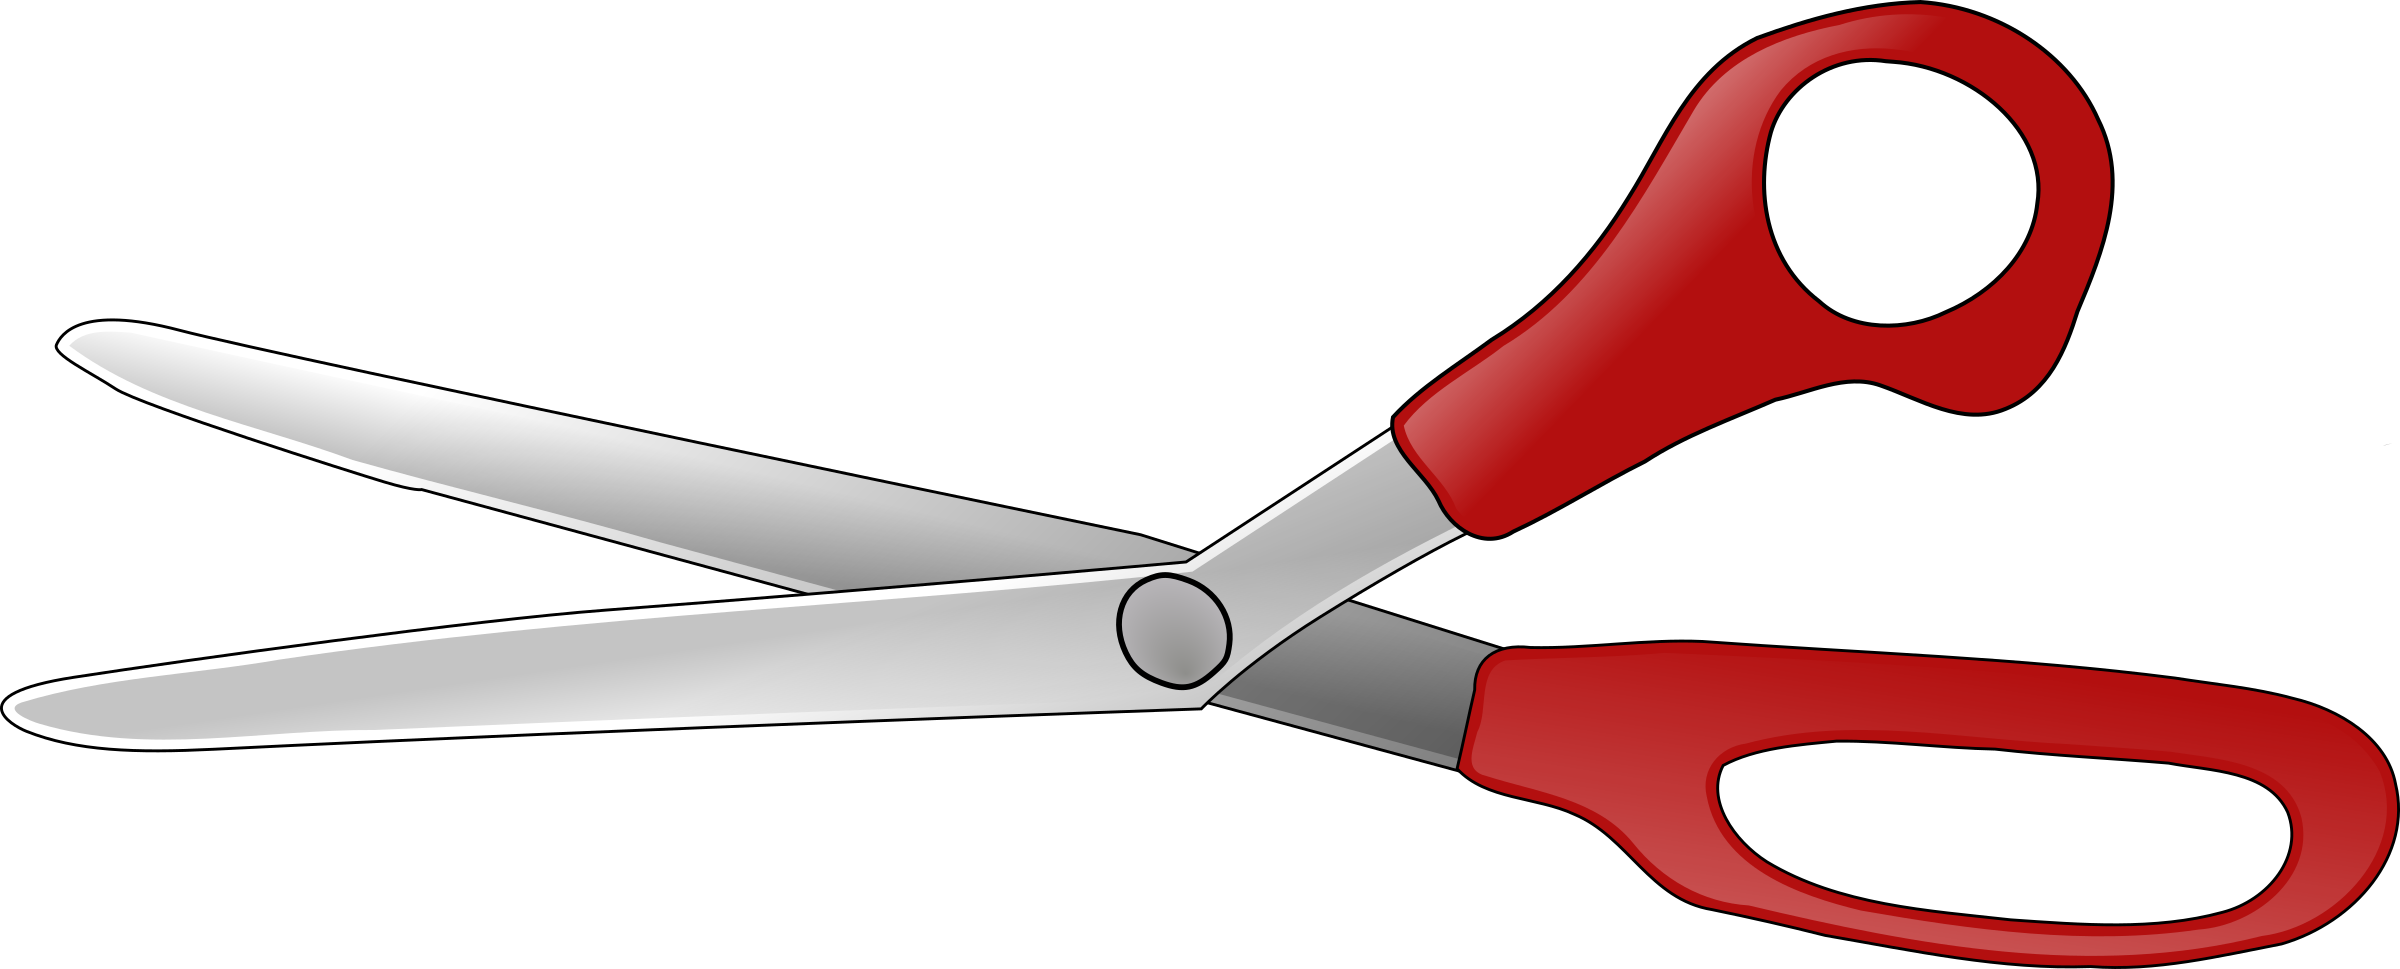 This free Icons Png design of scissors open V2 PlusPng.com  - PNG Of A Pair Of Scissors